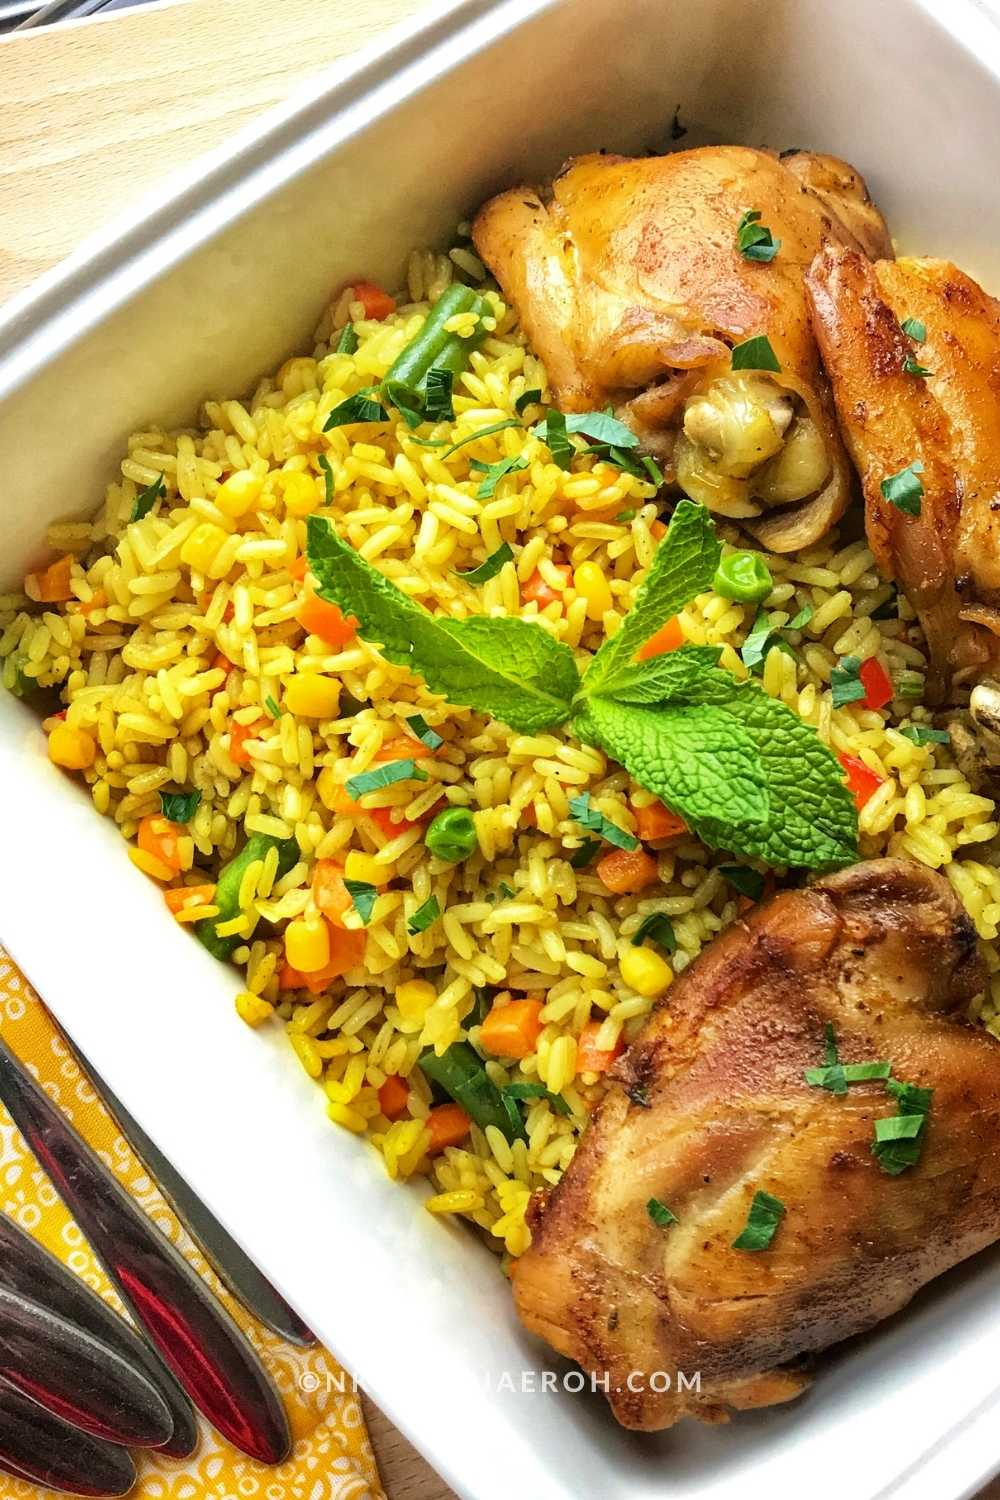 For the folks at the back, this is one fried rice recipe you want in your arsenal; it is easy to cook, colorful, flavorful, and will leave you with an unforgettable experience! The best part is that you can serve this recipe with anything – chicken, fish, tofu!